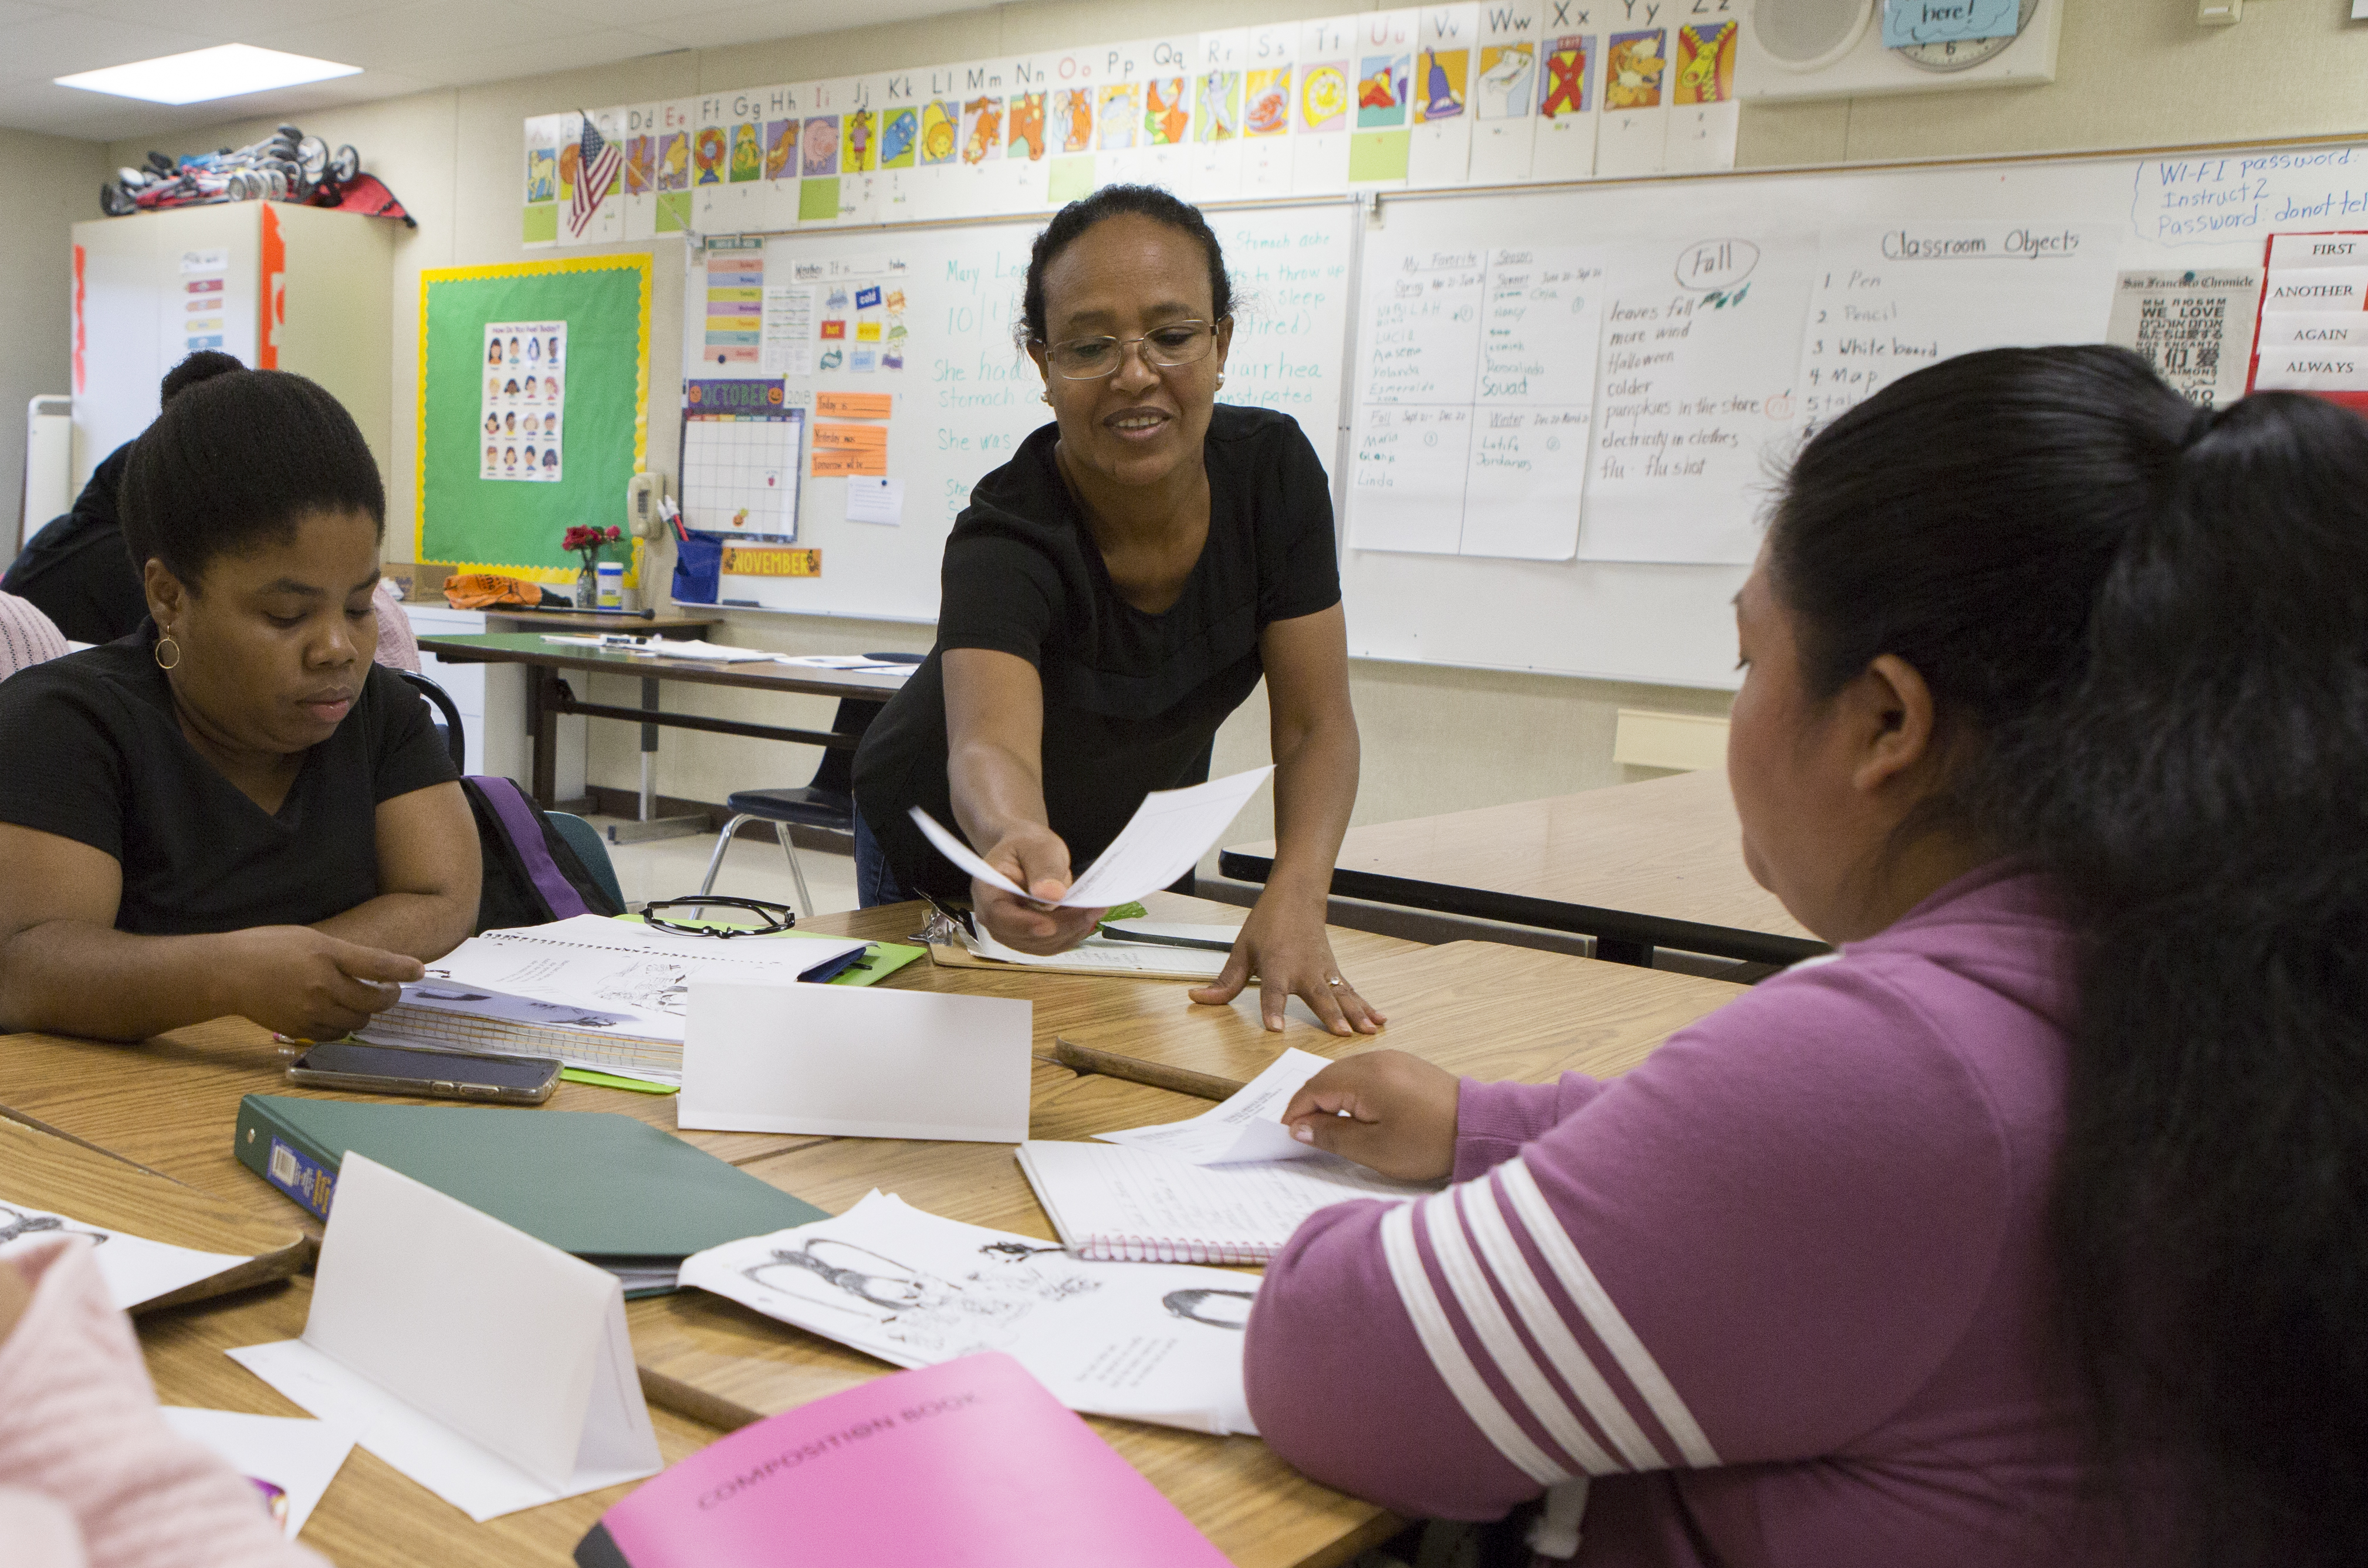 Woman leans over desks handing out paper, with two other women sitting around and white board in elemenatary school classroom behind them